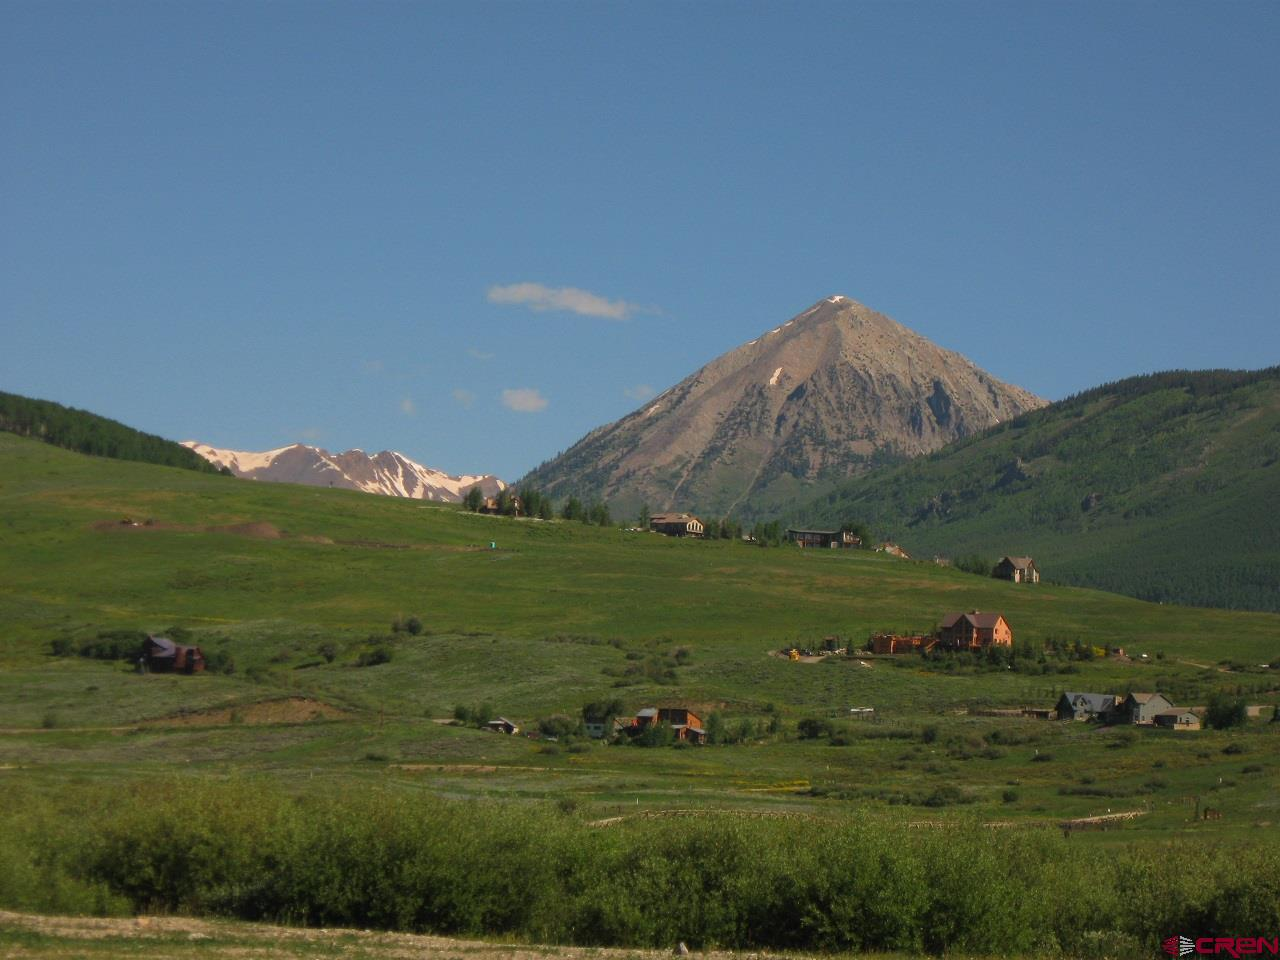 MLS# 757733 - 7 - 341 Mccormick Ranch Road, Crested Butte, CO 81224